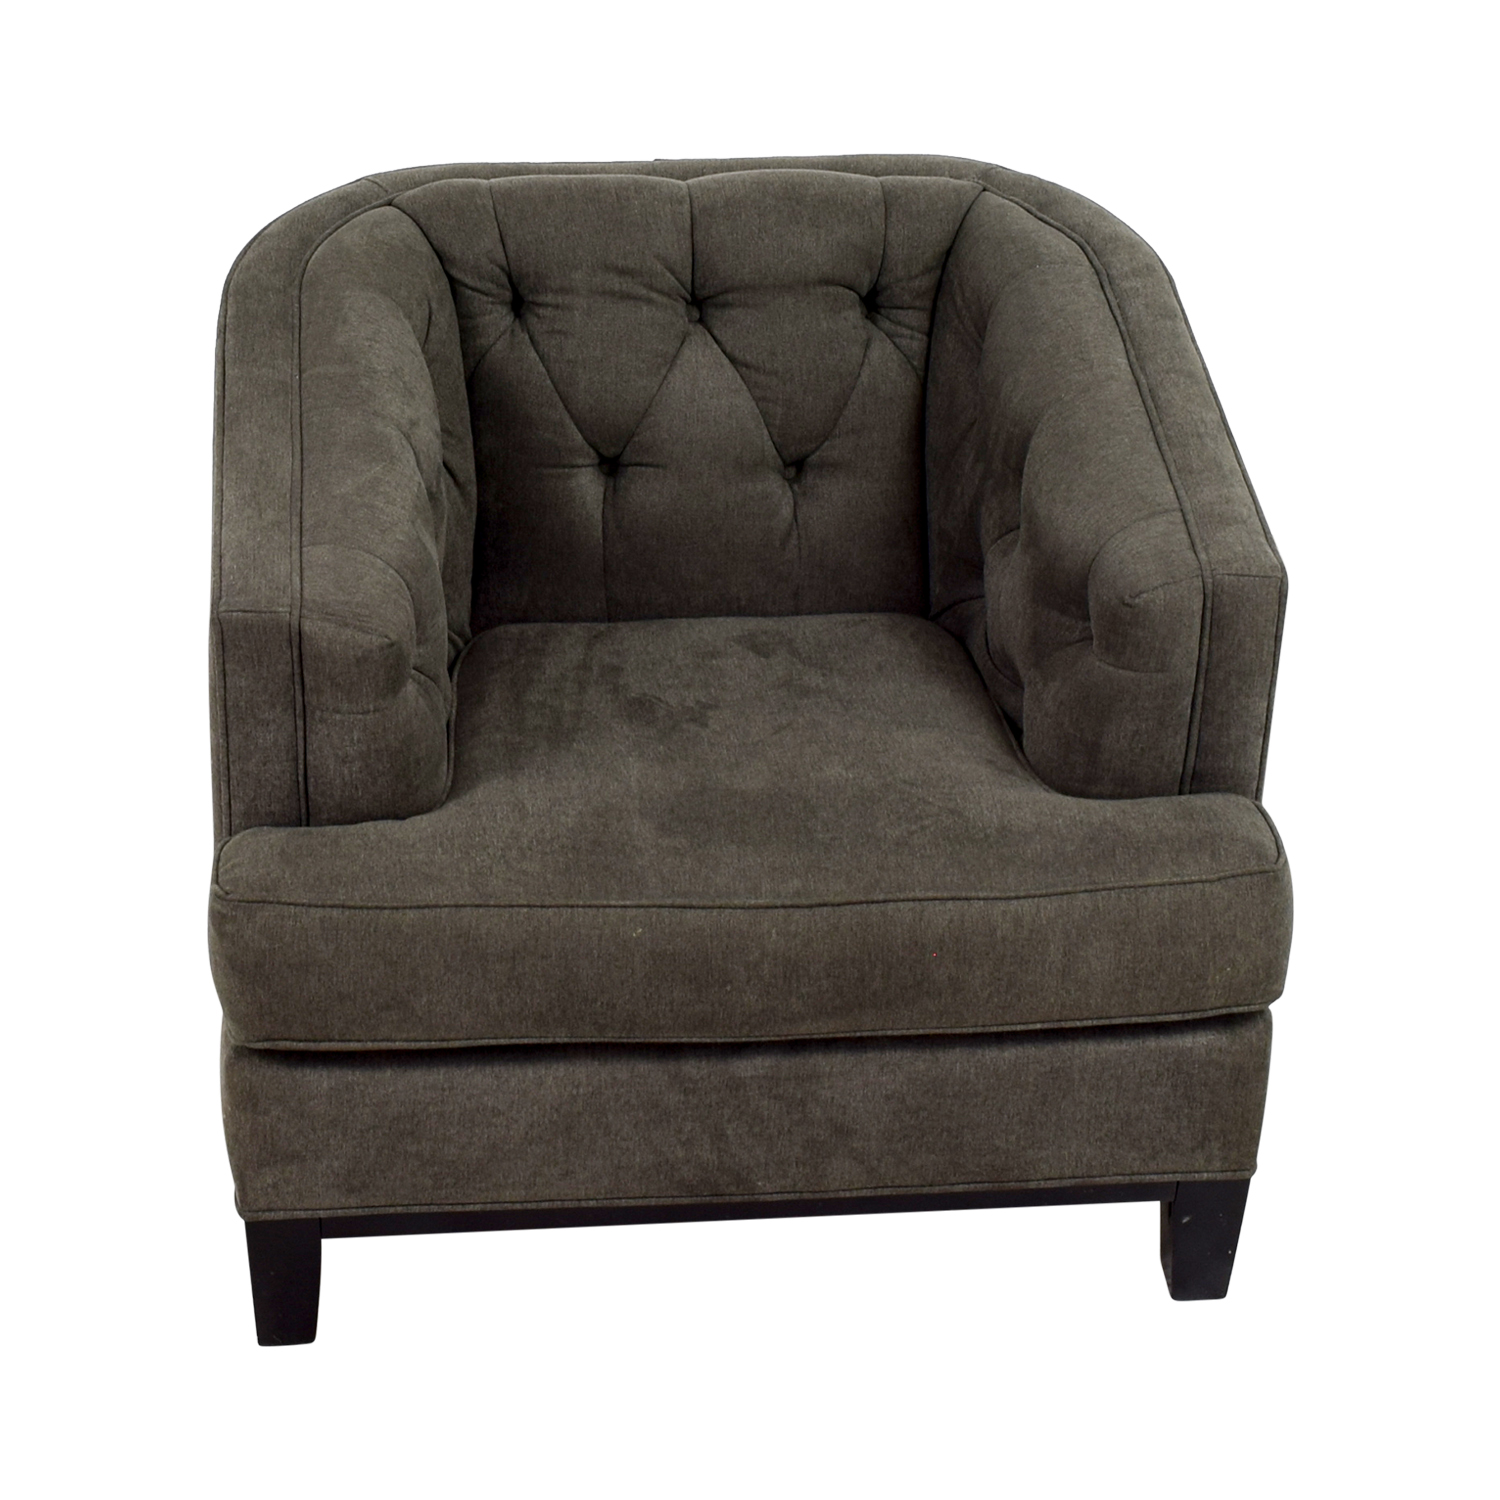 Rooms To Go Rooms To Go Grey Tufted Chair coupon